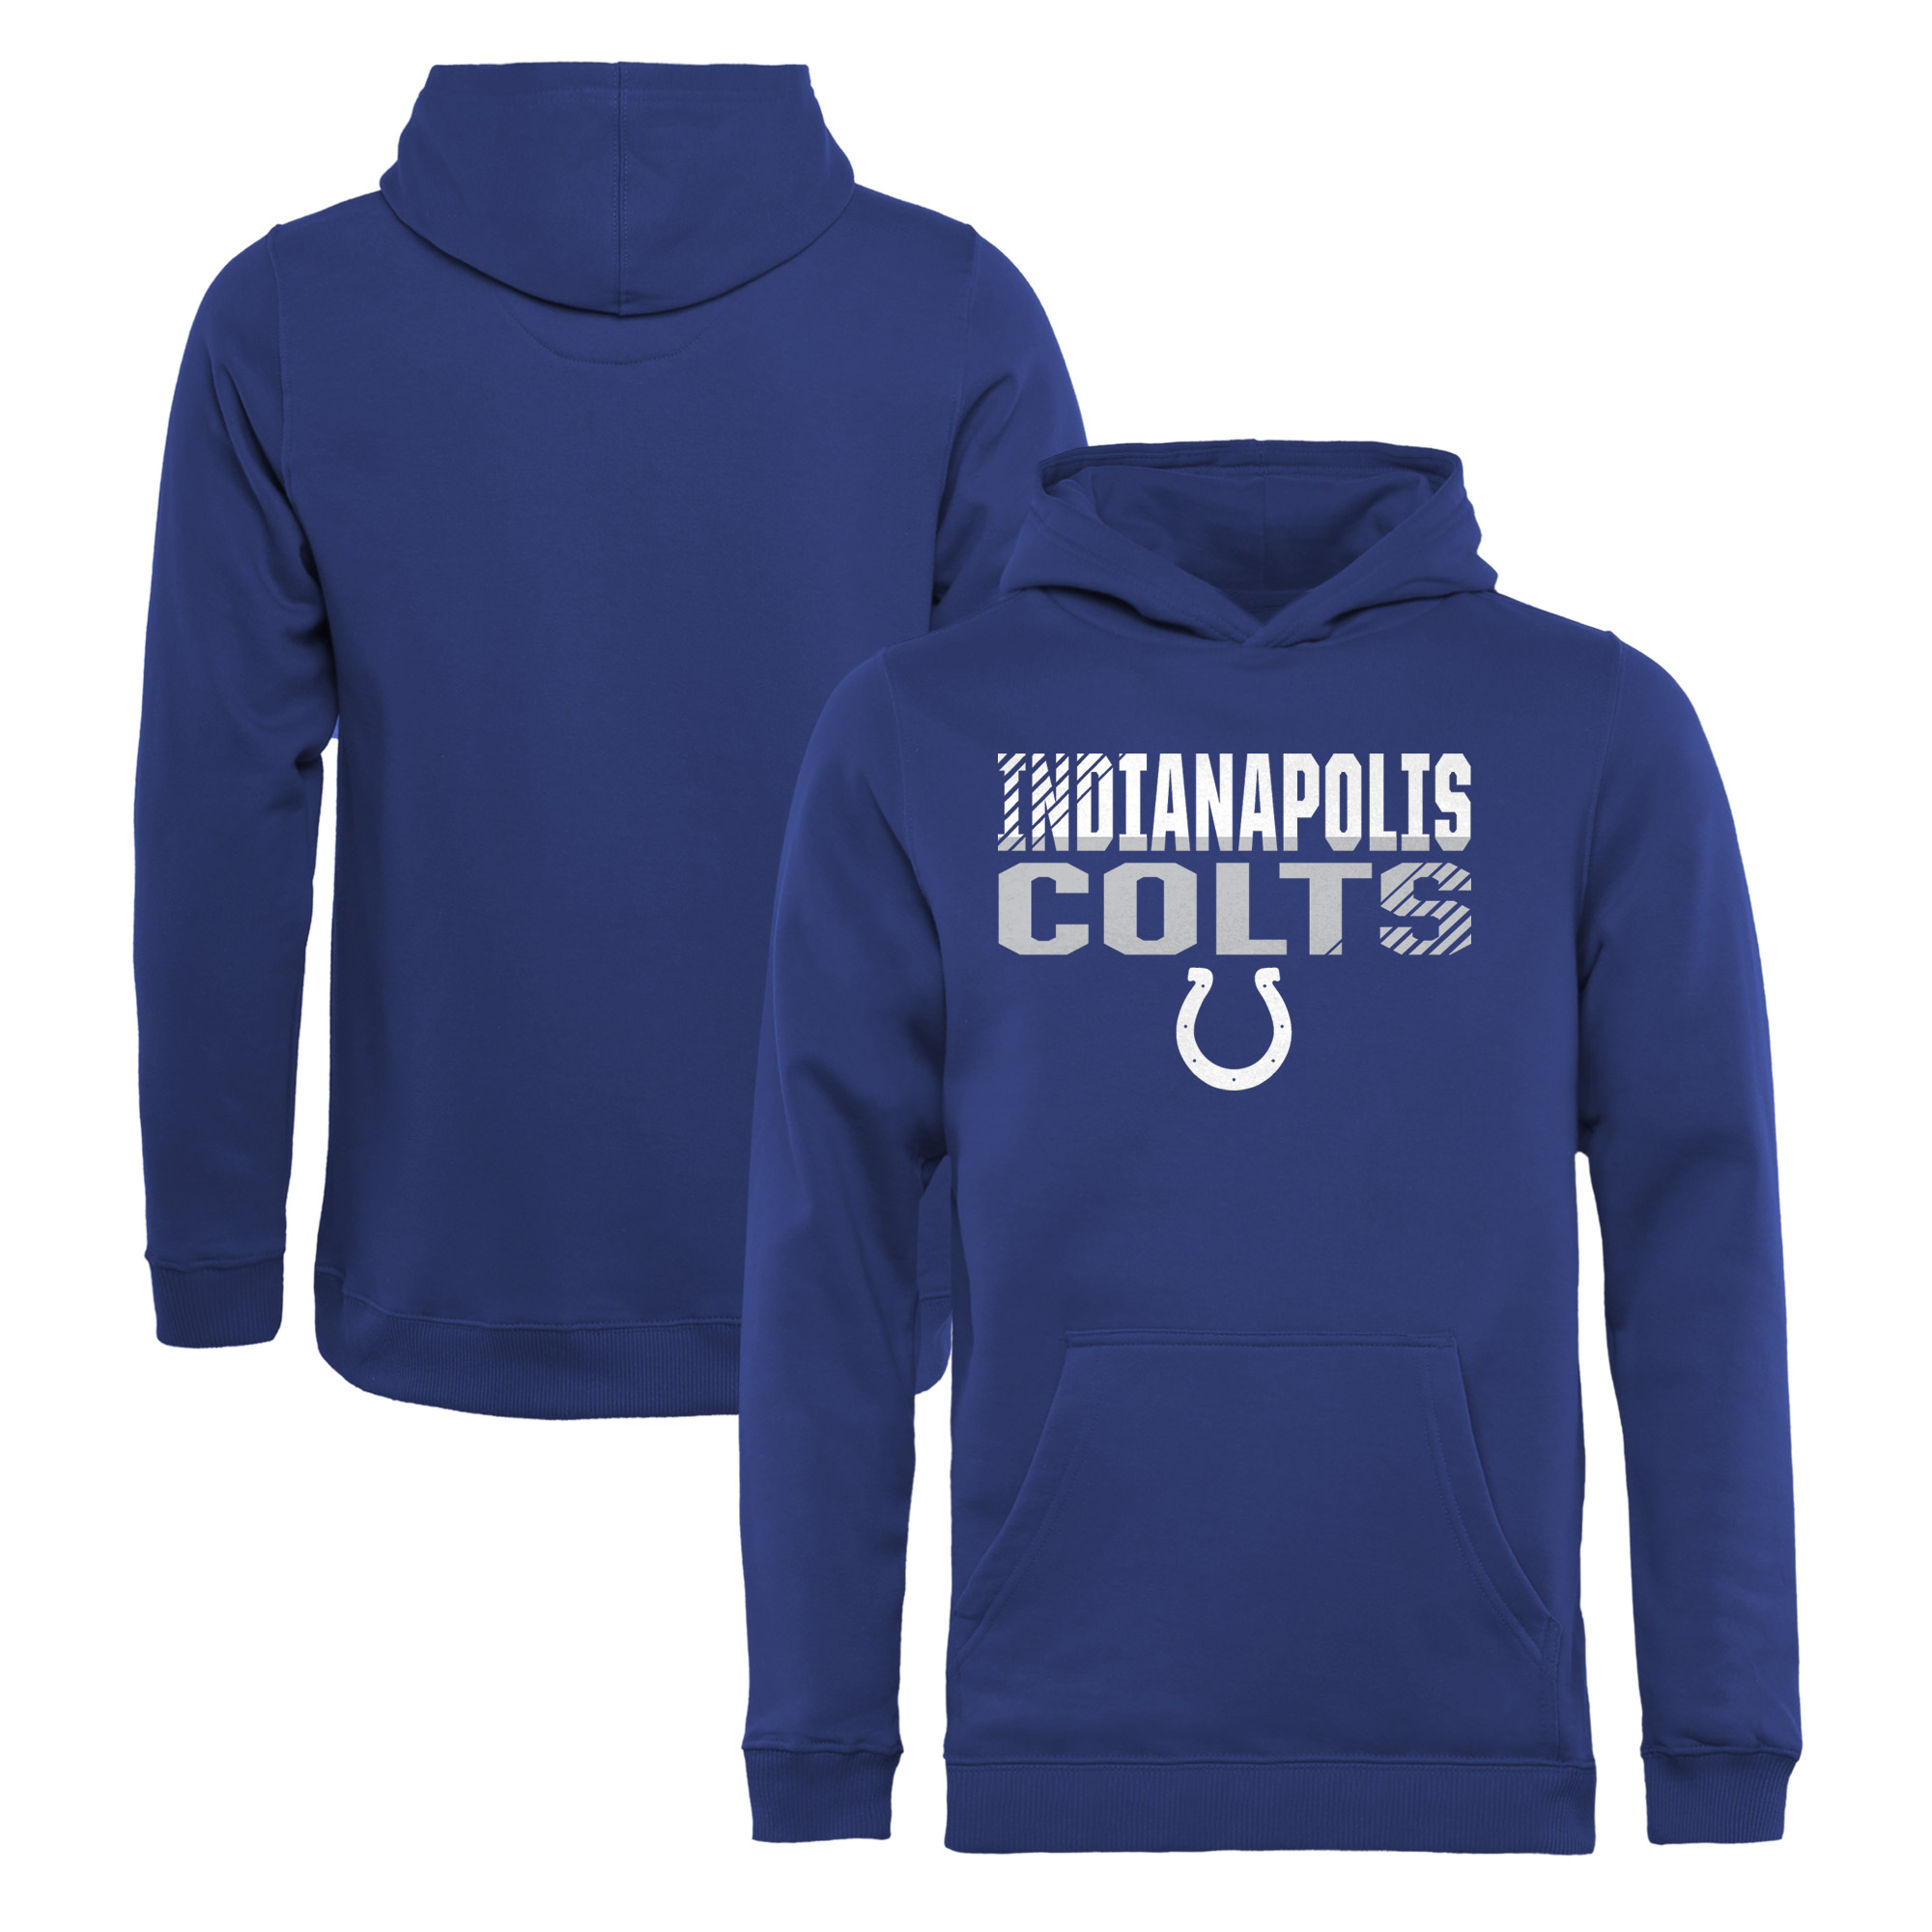 Indianapolis Colts NFL Pro Line by Fanatics Branded Youth Iconic Collection Fade Out Pullover Hoodie - Royal